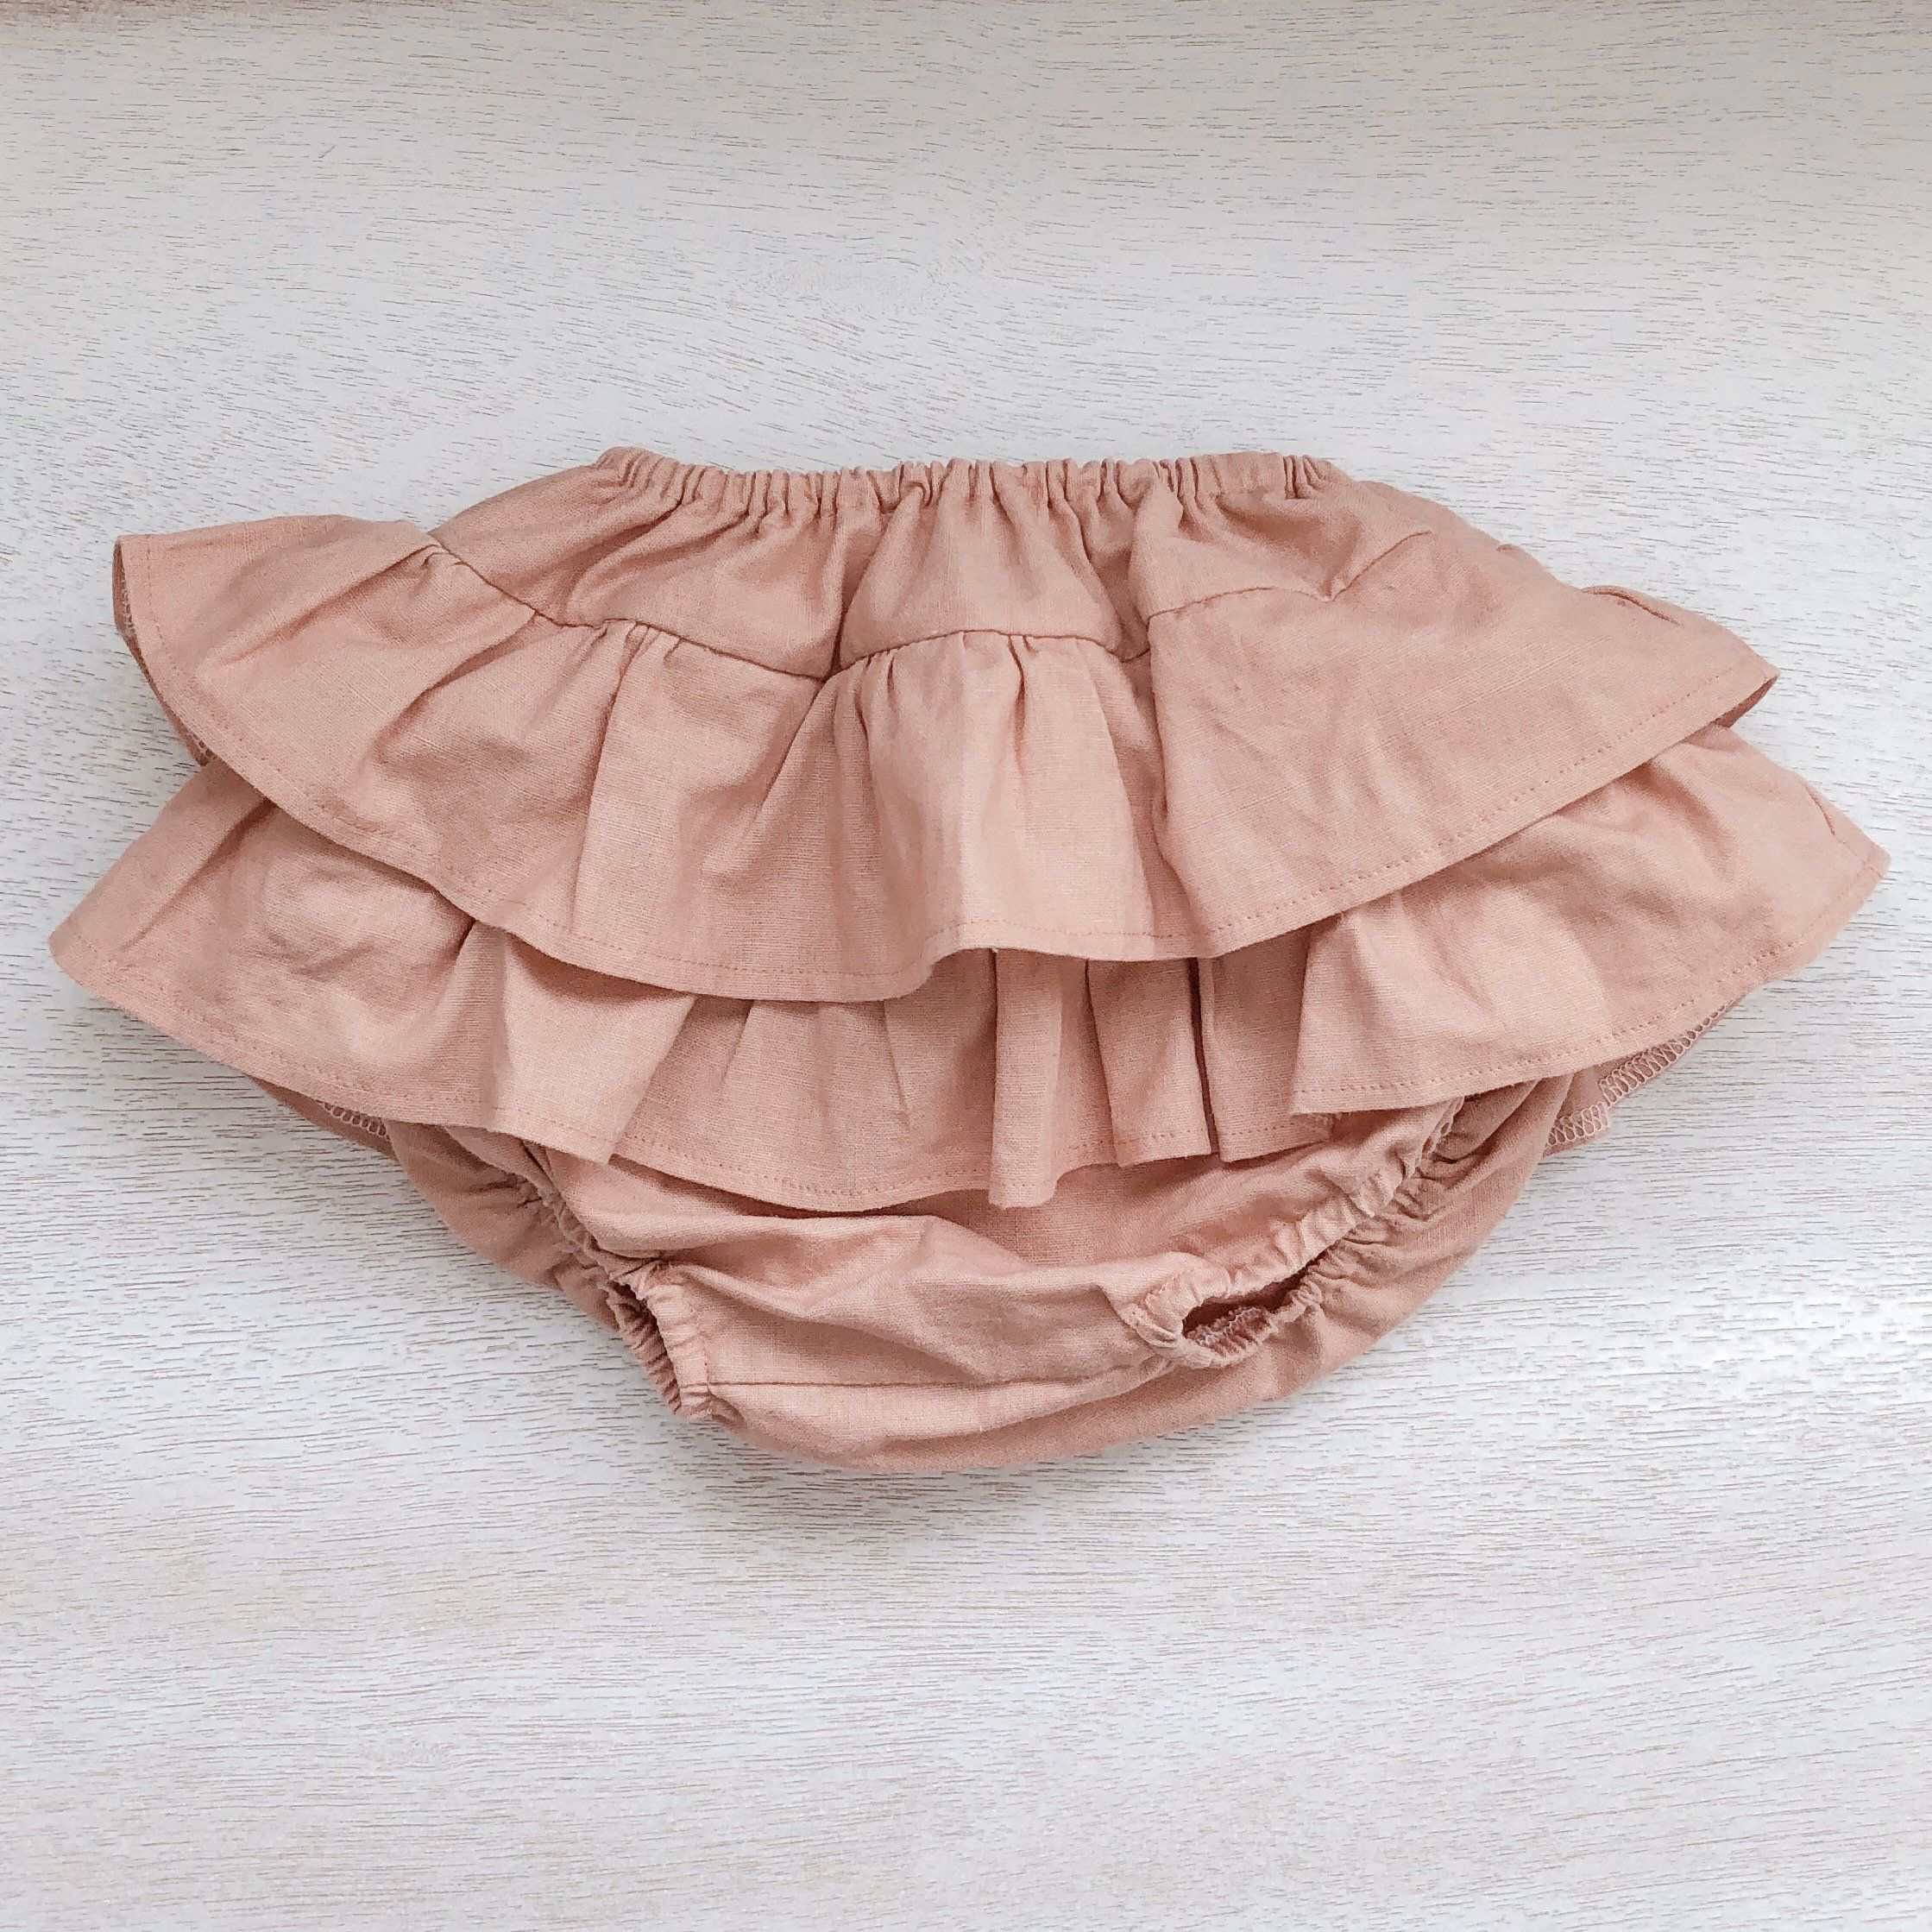 baby girl clothes Blue floral baby bloomers  paper bag waist Baby bloomers cake smash outfit girl